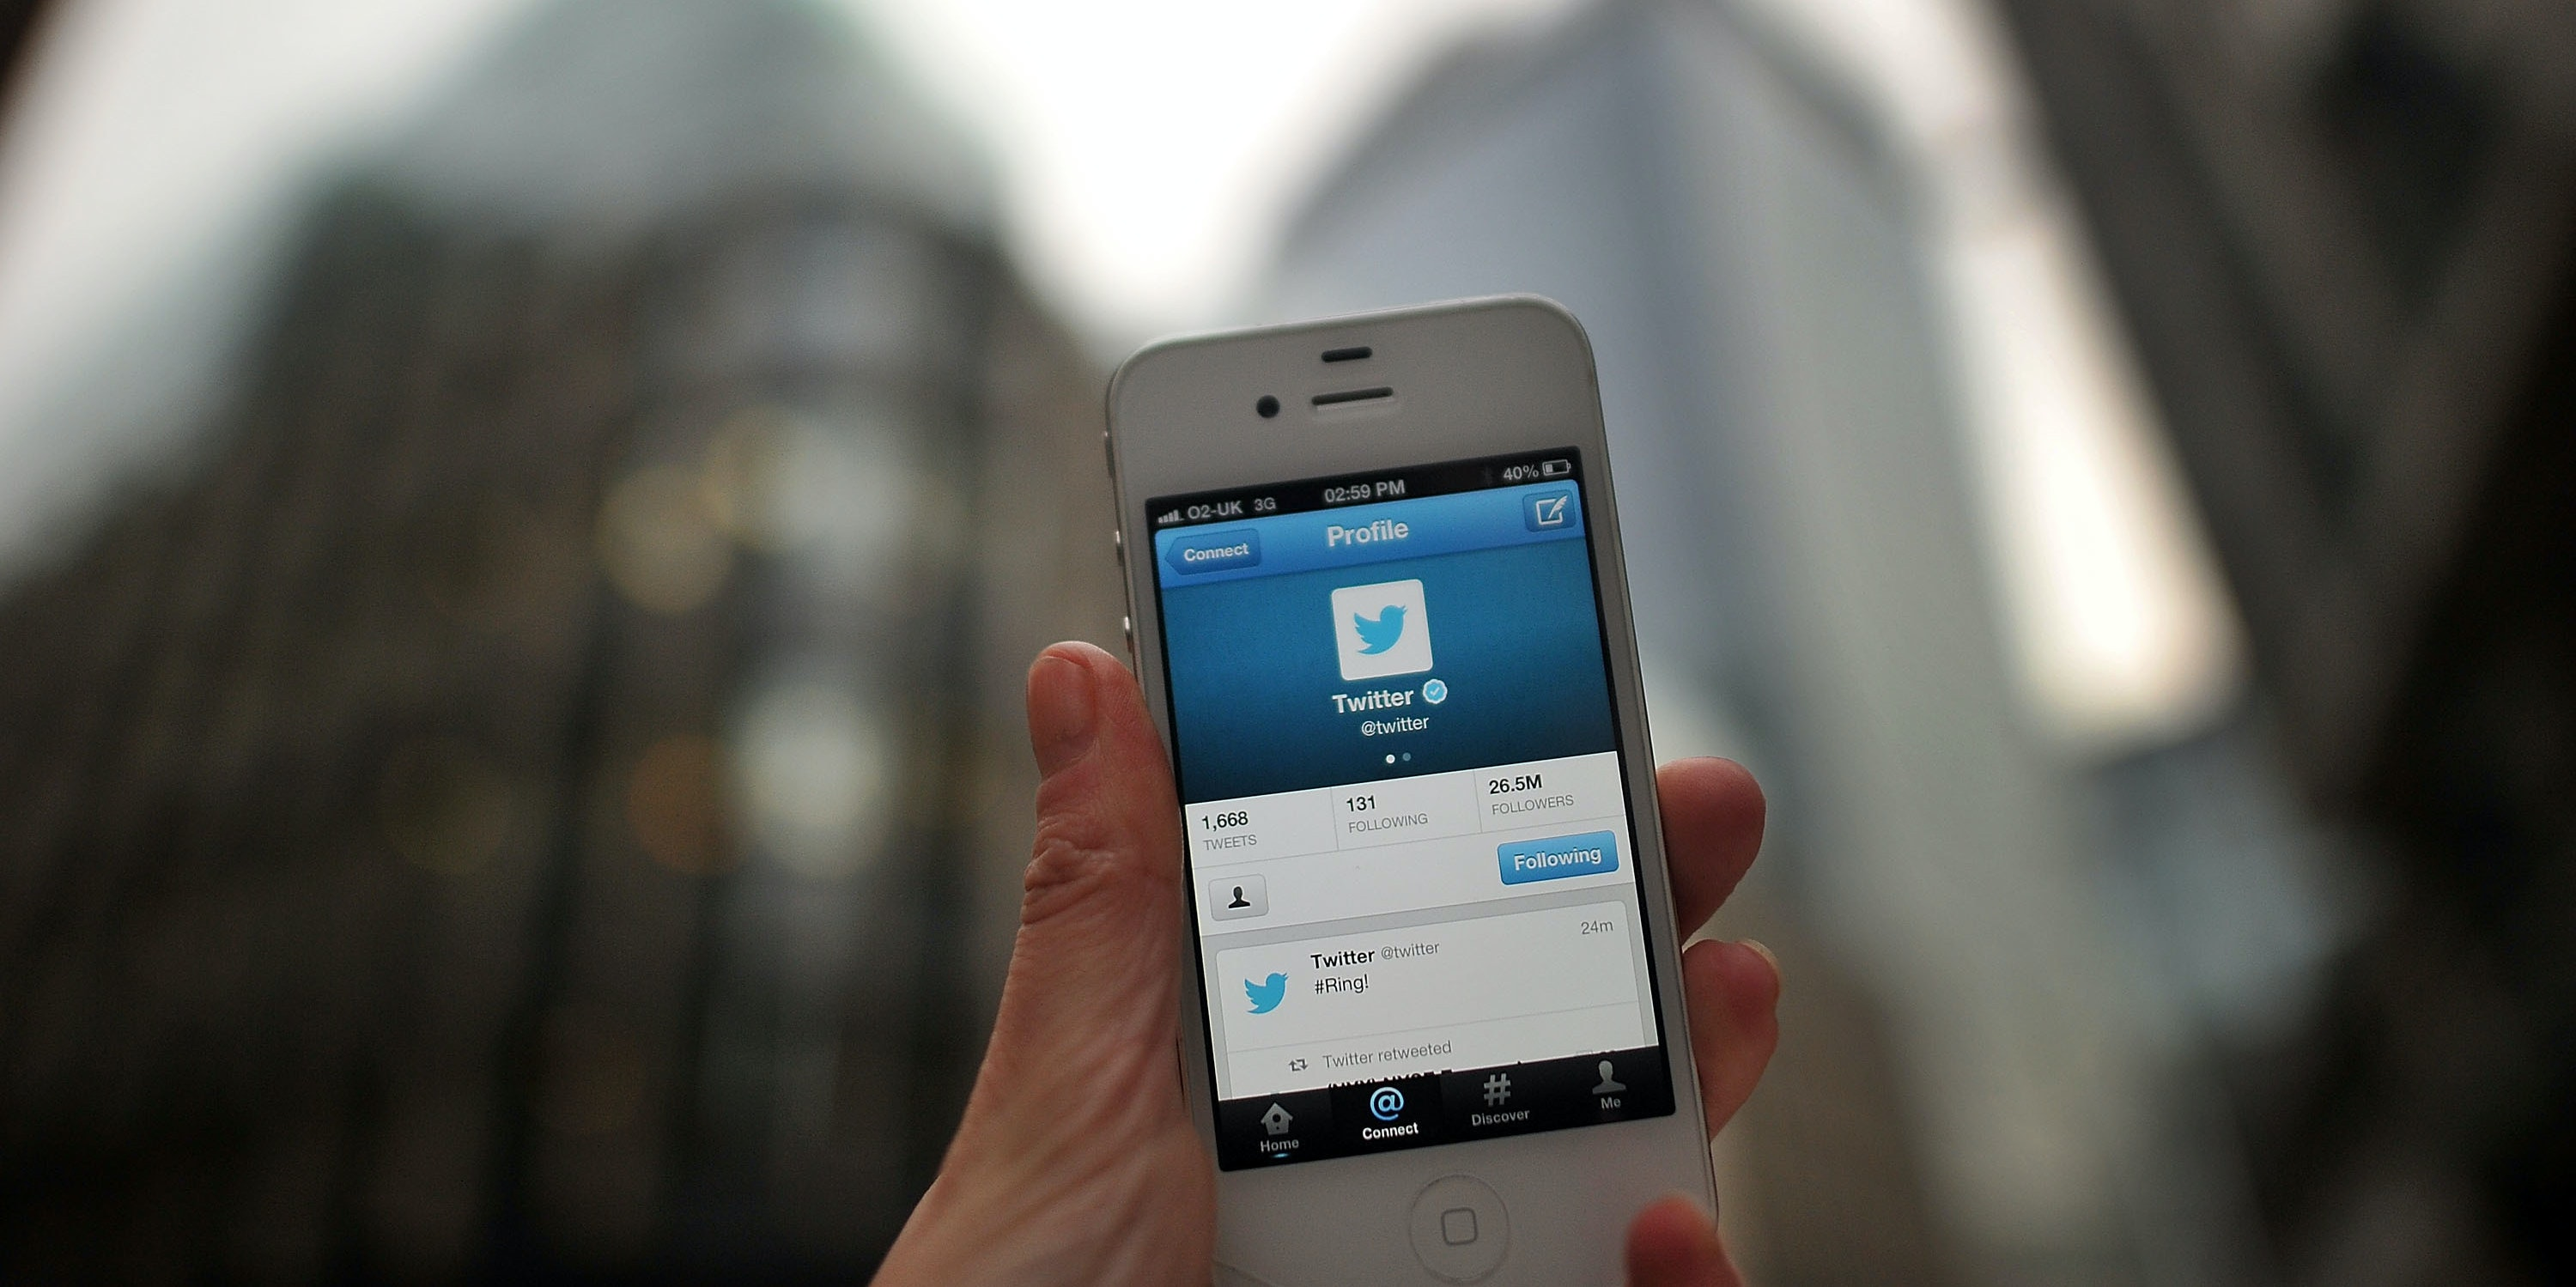 LONDON, ENGLAND - NOVEMBER 07:  In this photo illustration, communications from Twitter are displayed on a mobile device announcing the company's initial public offering and debut on the New York Stock Exchange on November 7, 2013 in London, England. Twitter went public on the NYSE opening at USD 26 per share, valuing the company's worth at an estimated USD 18 billion.  (Photo by Bethany Clarke/Getty Images)